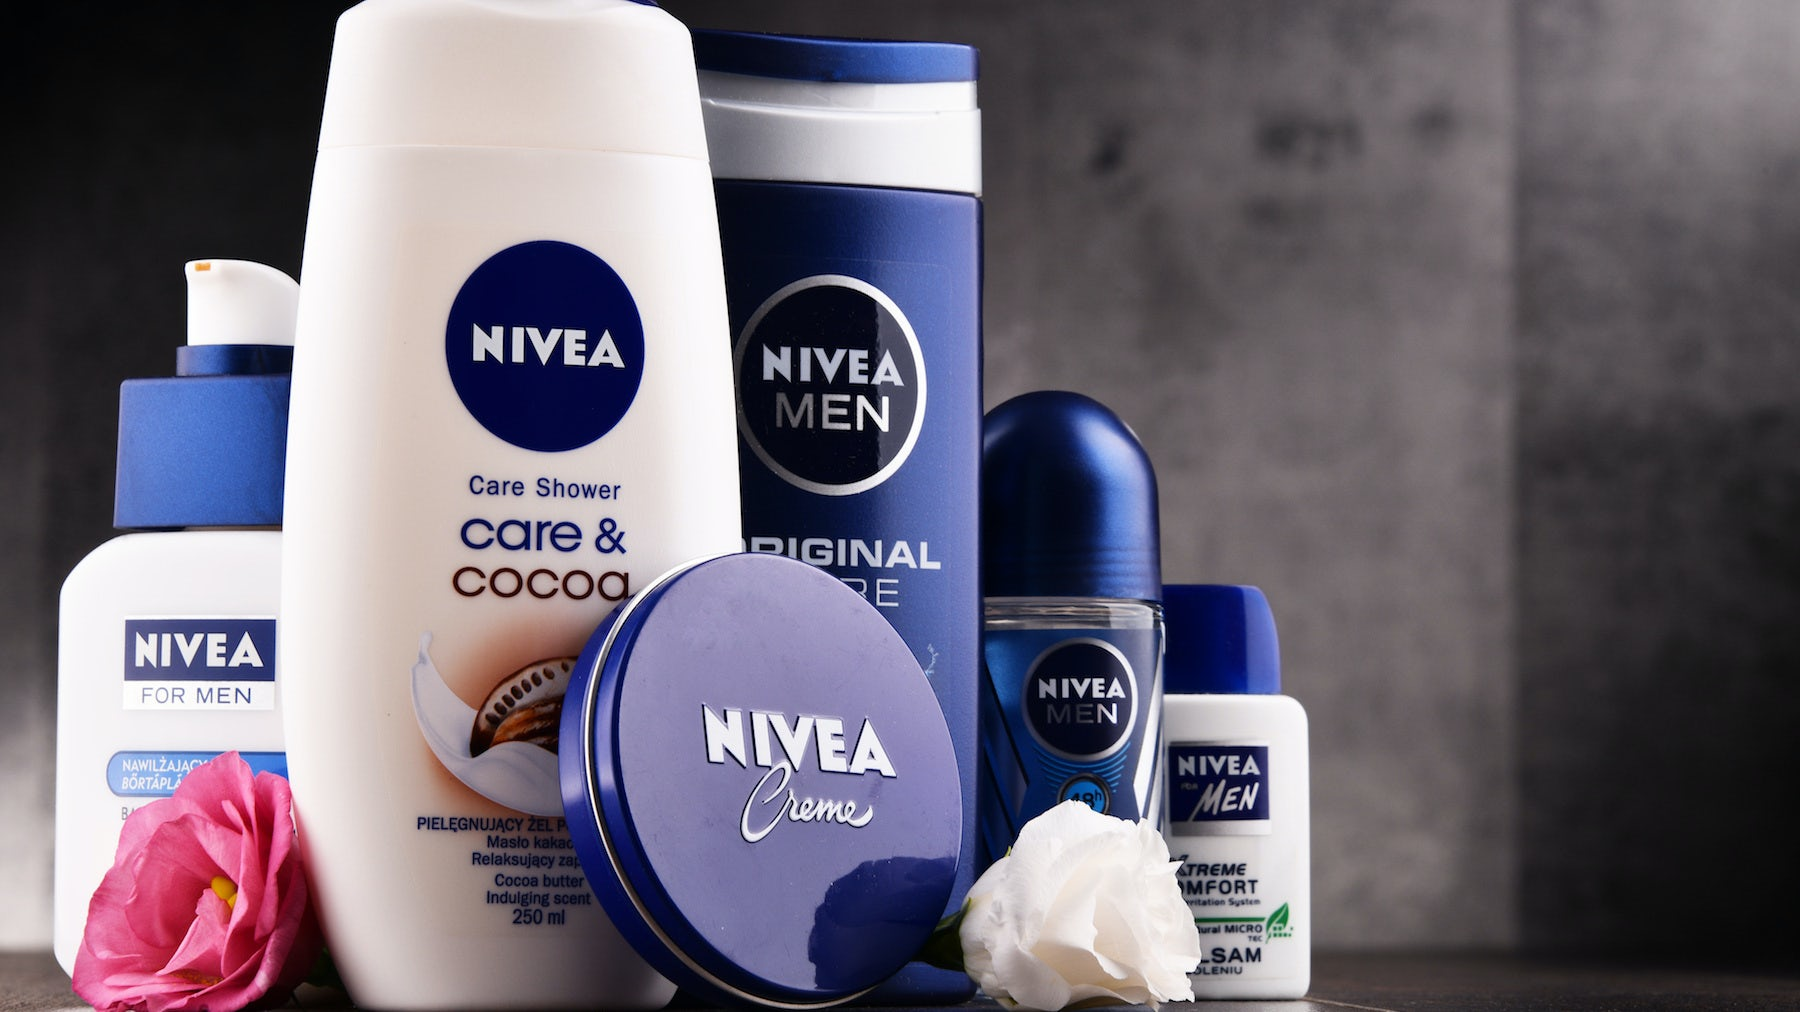 Nivea products | Source: Shutterstock